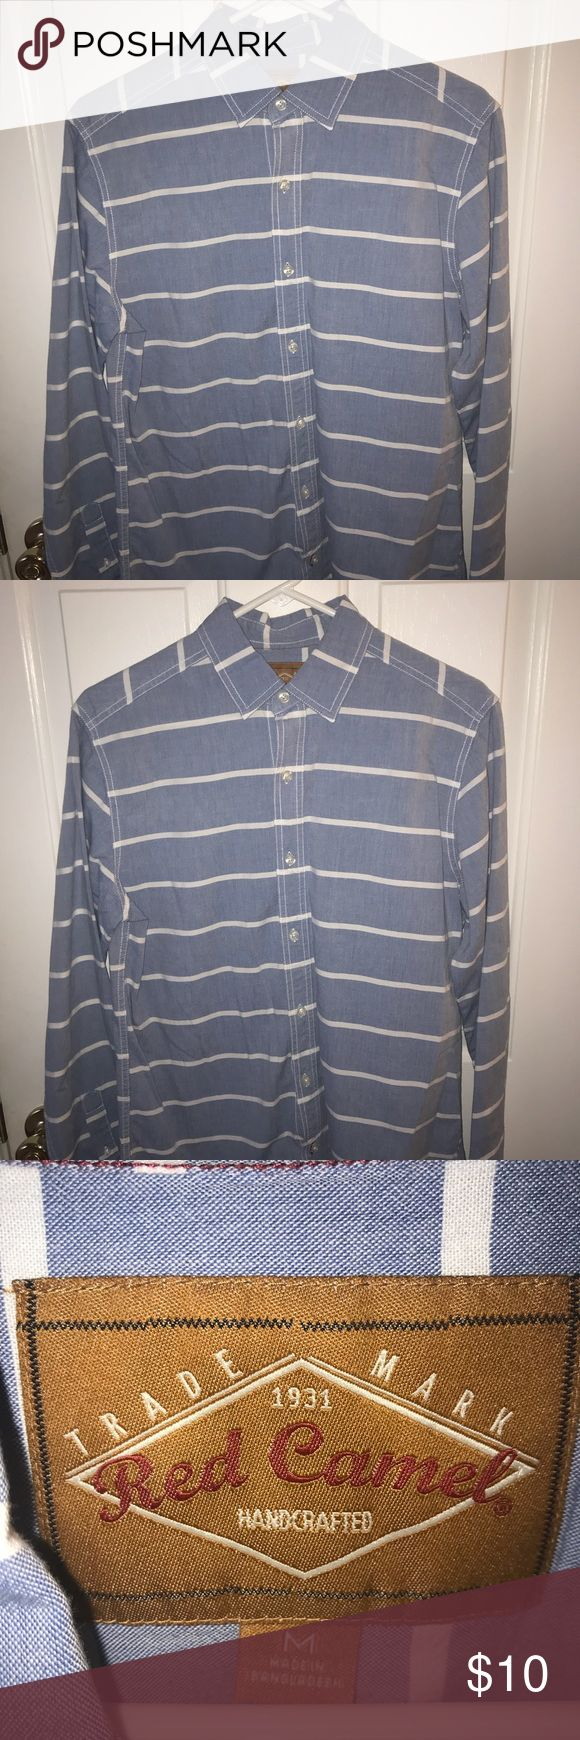 Red Camel men's casual shirt. Only worn a few times. Excellent condition. Red Camel Shirts Casual Button Down Shirts